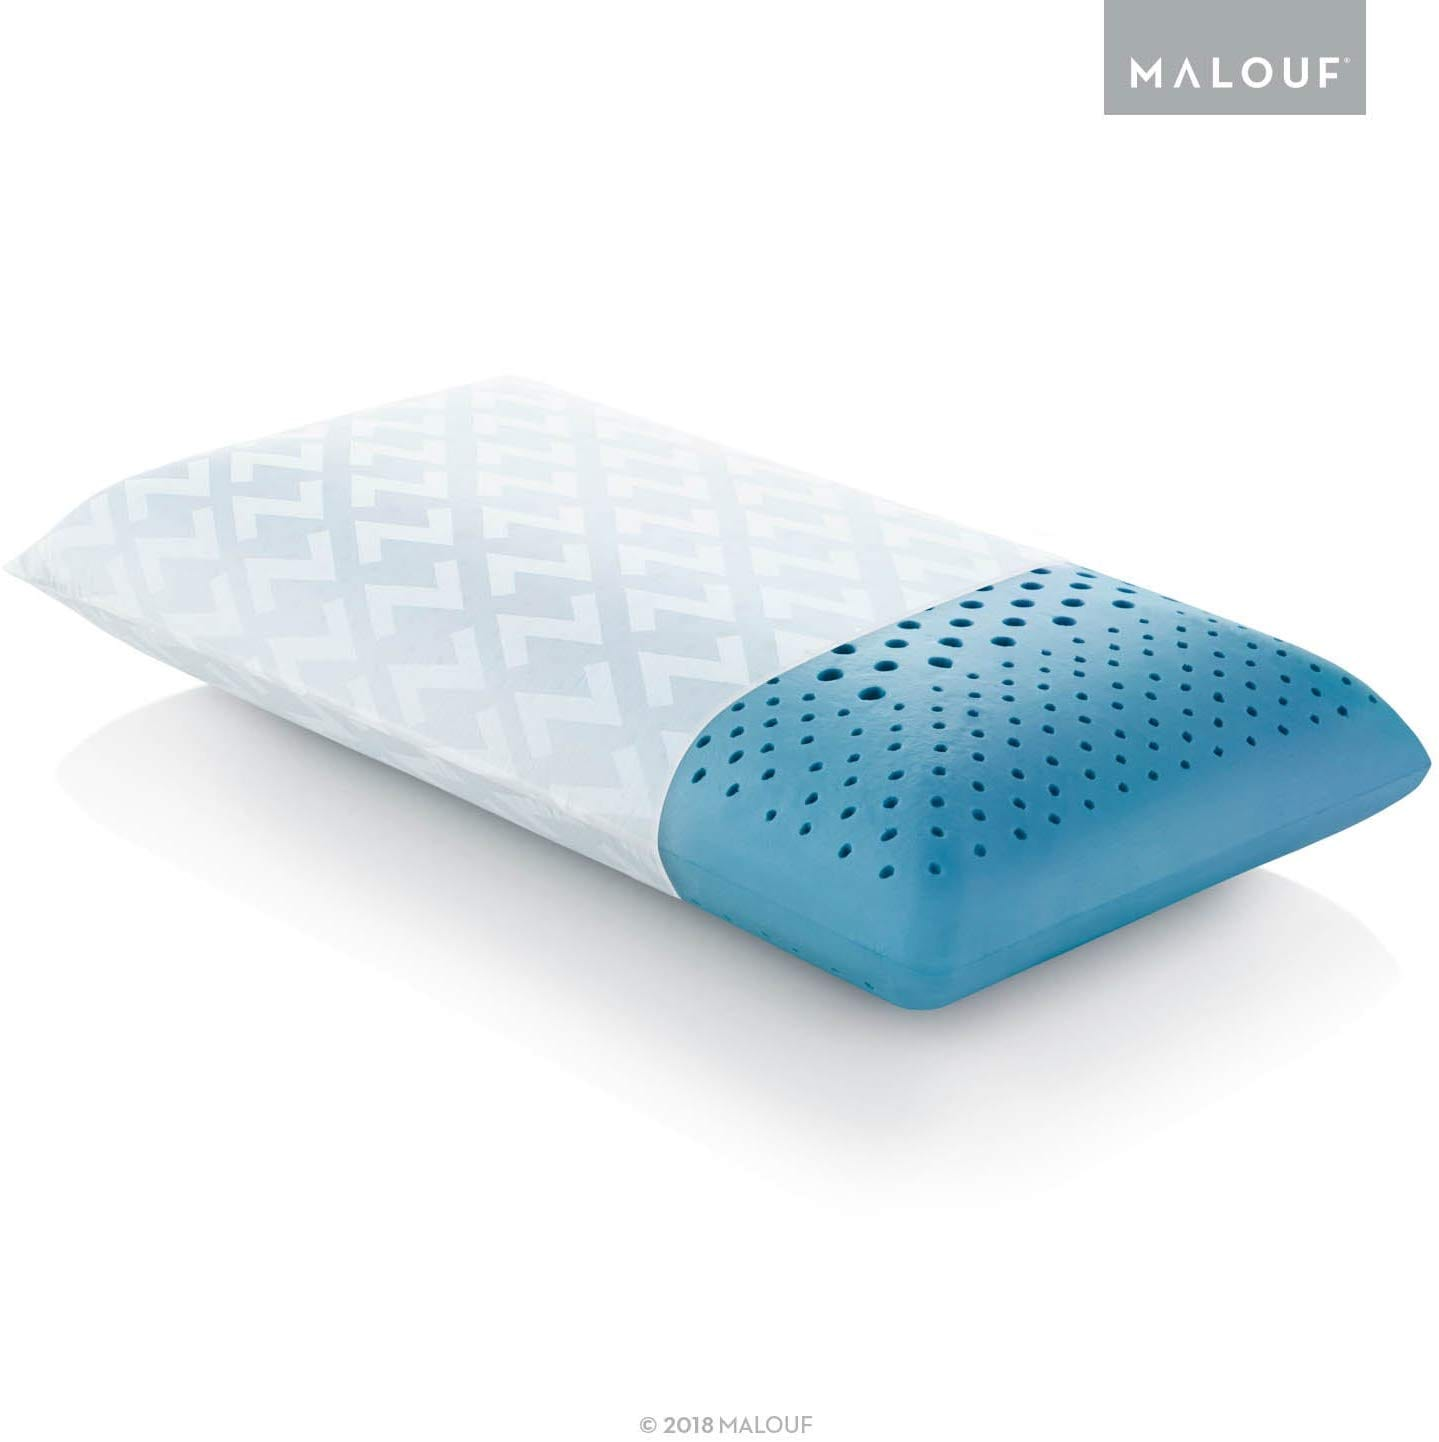 MALOUF best pillows for back pain review by www.dailysleep.org